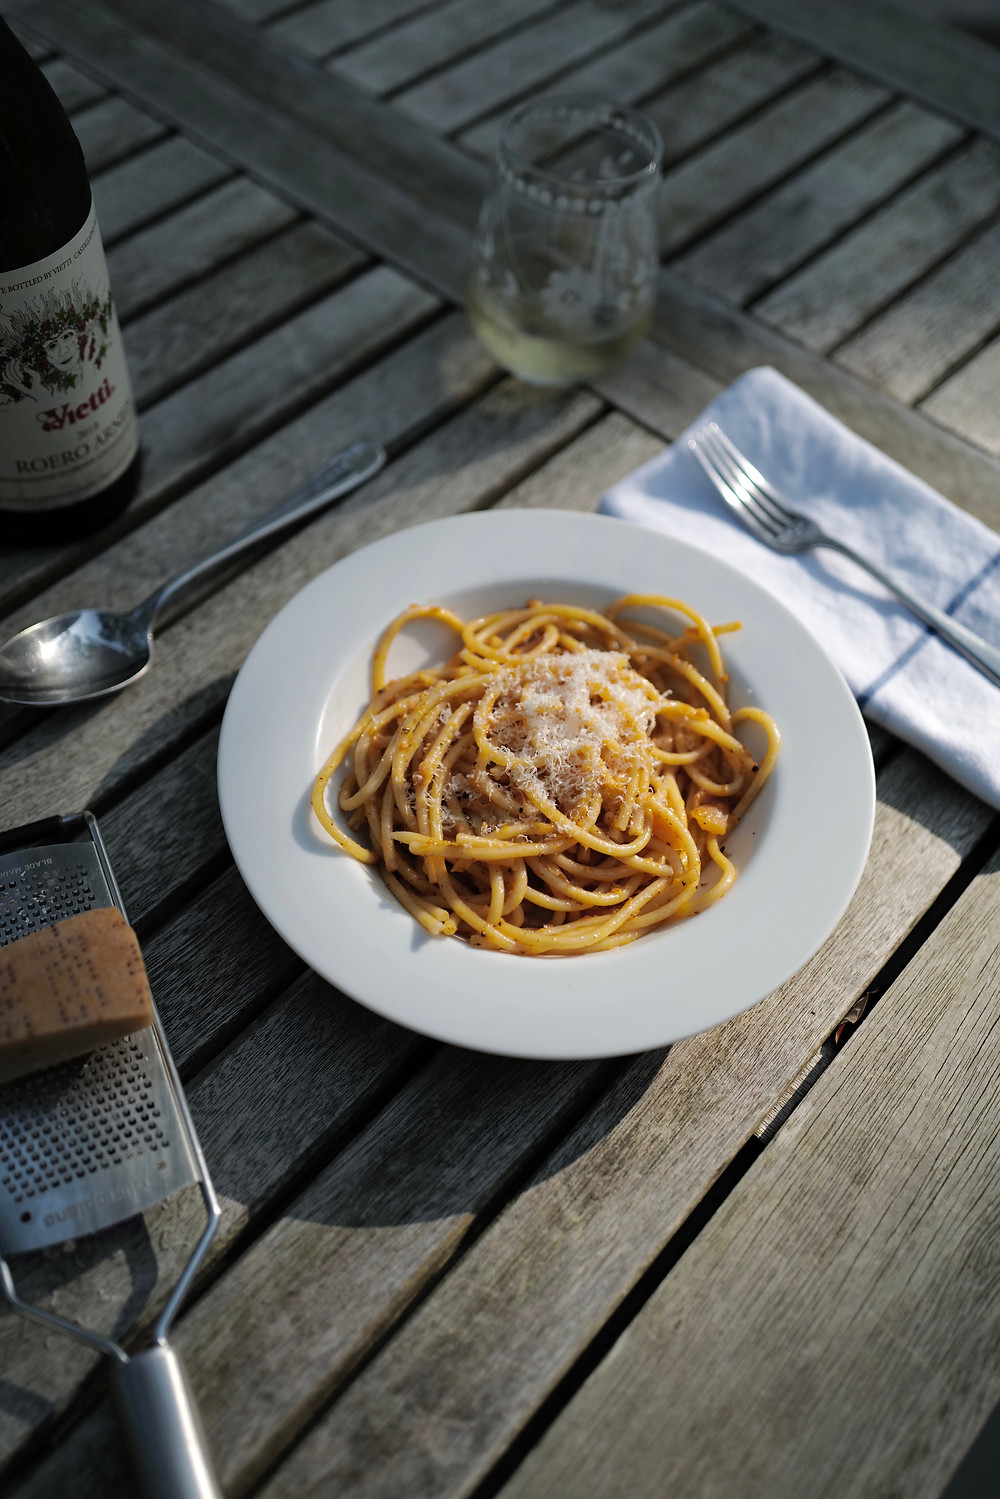 Spaghetti al Melone by Giuliano Hazan; canteloupe pasta with wine pairing; Vietti Arneis; Piedmont wine; Arneis grape; Vietti winery;